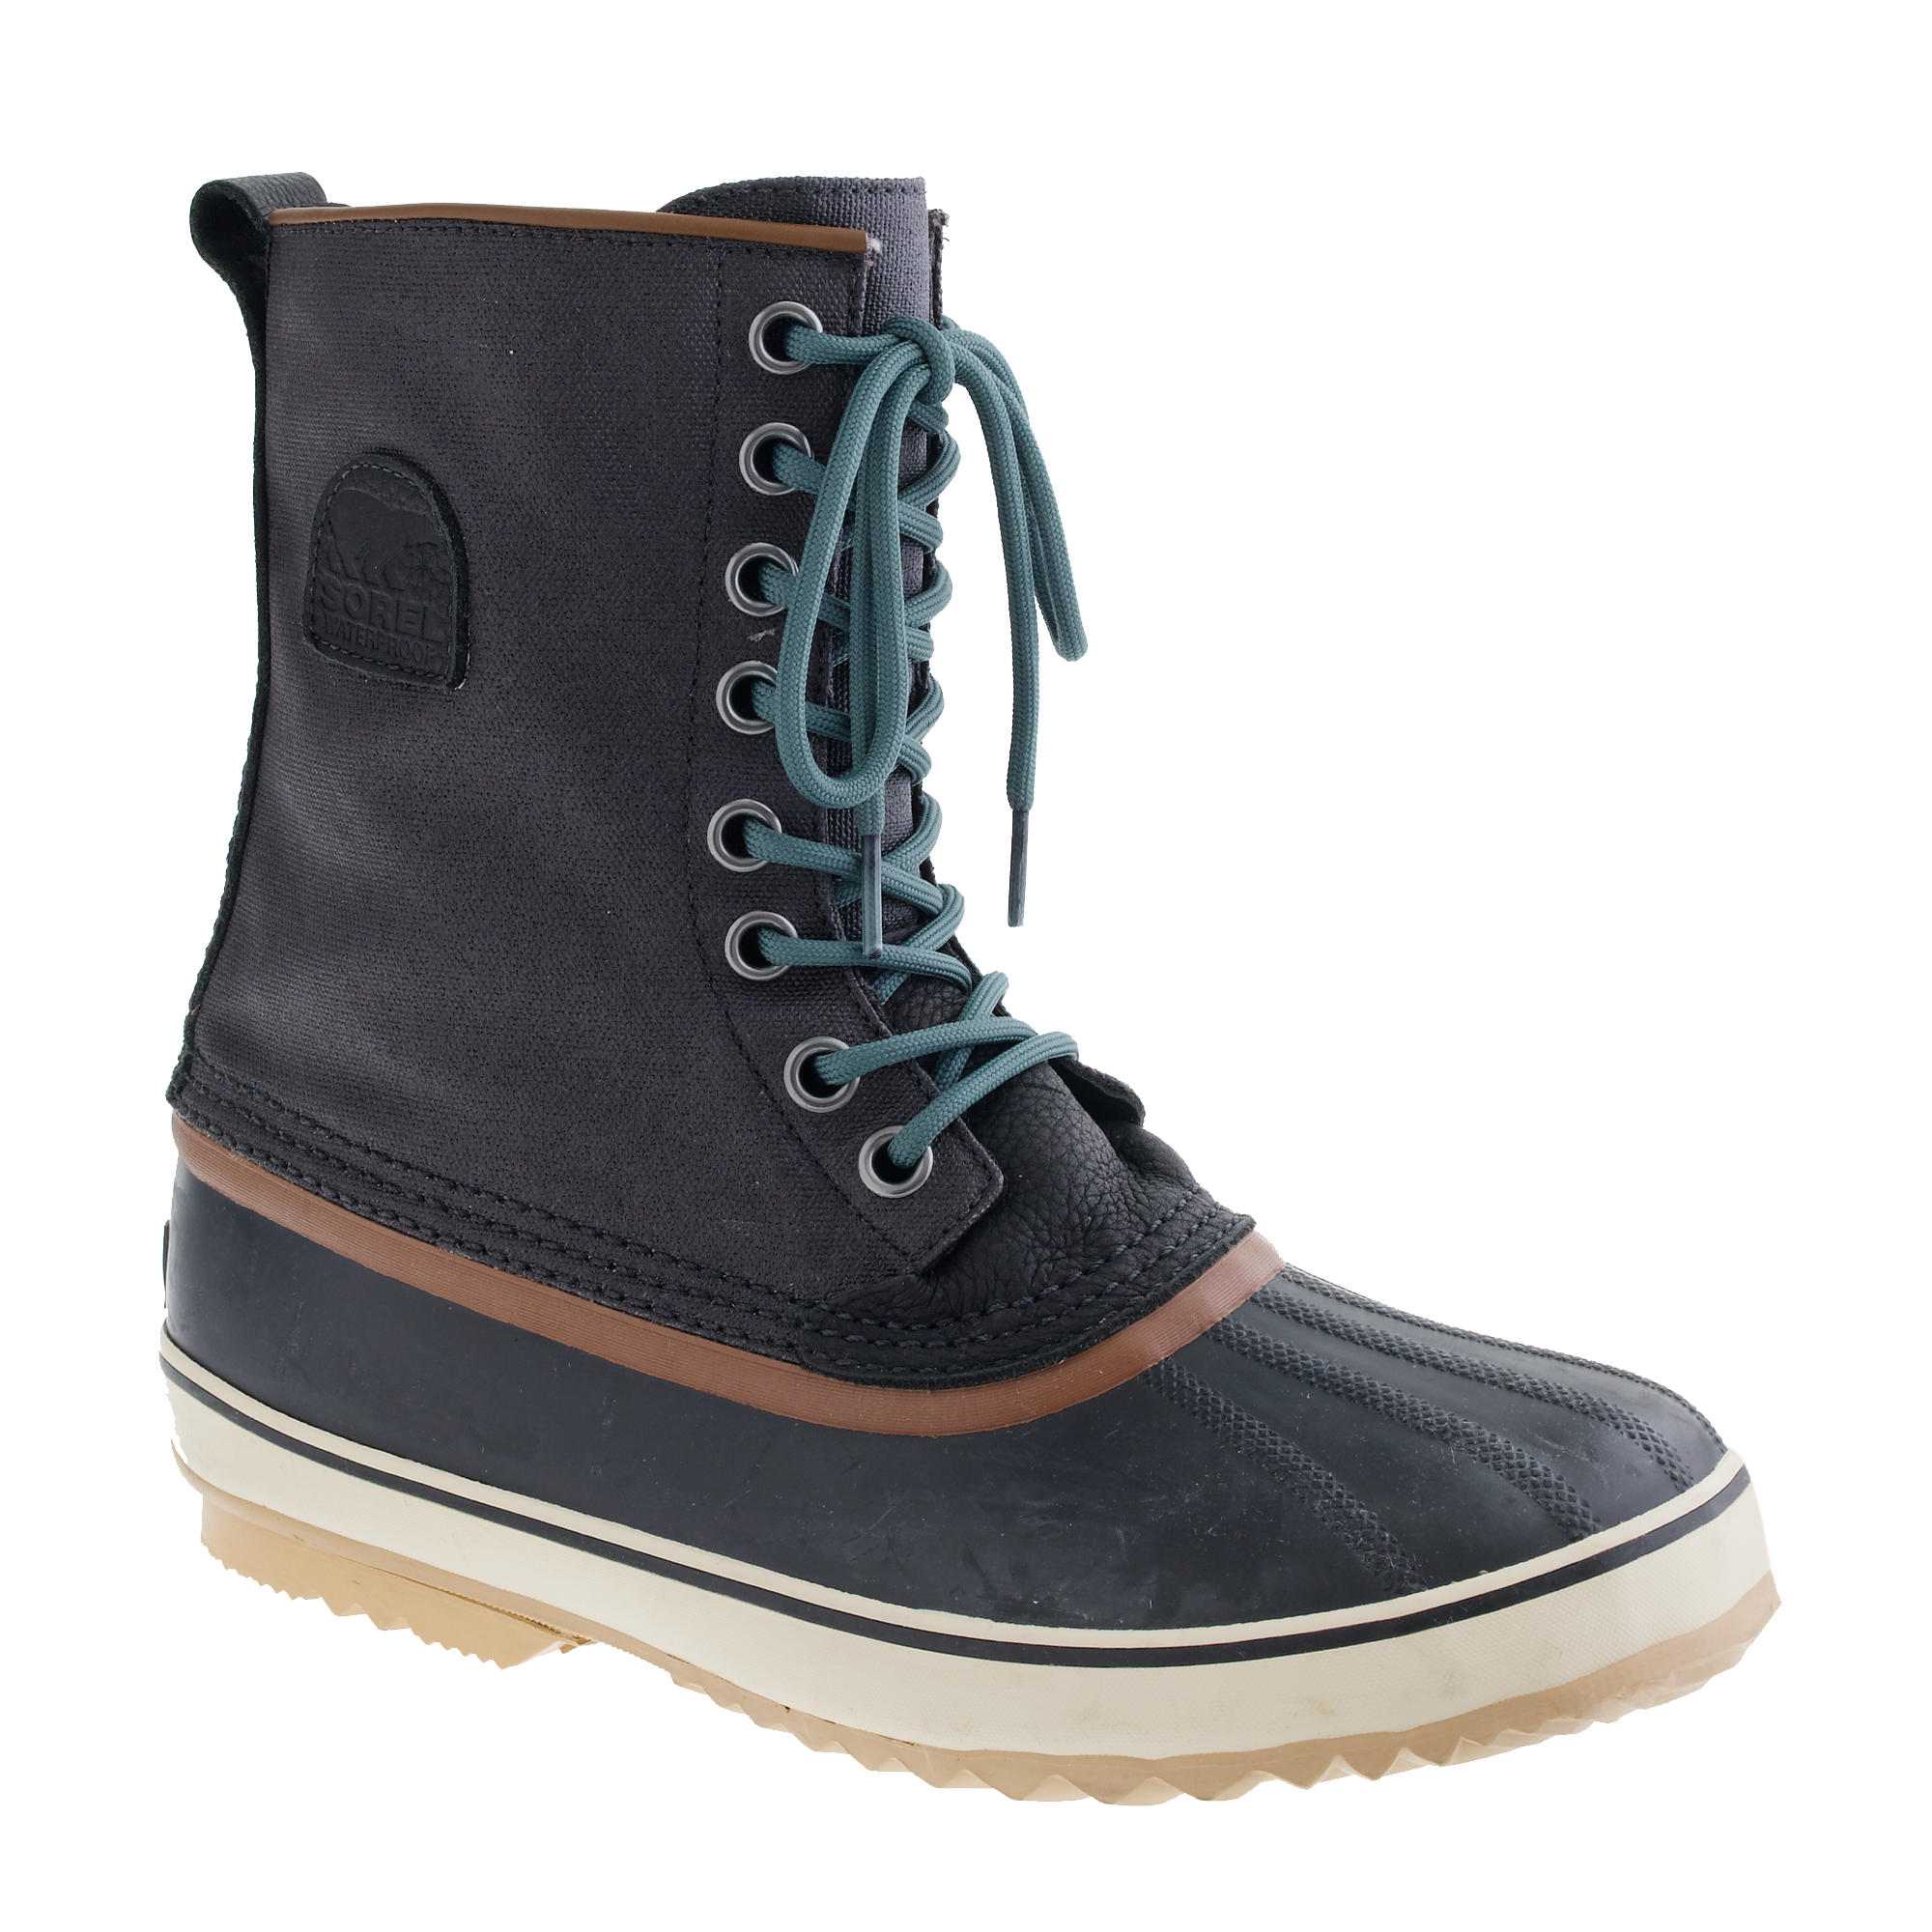 Sorel Shoes Online